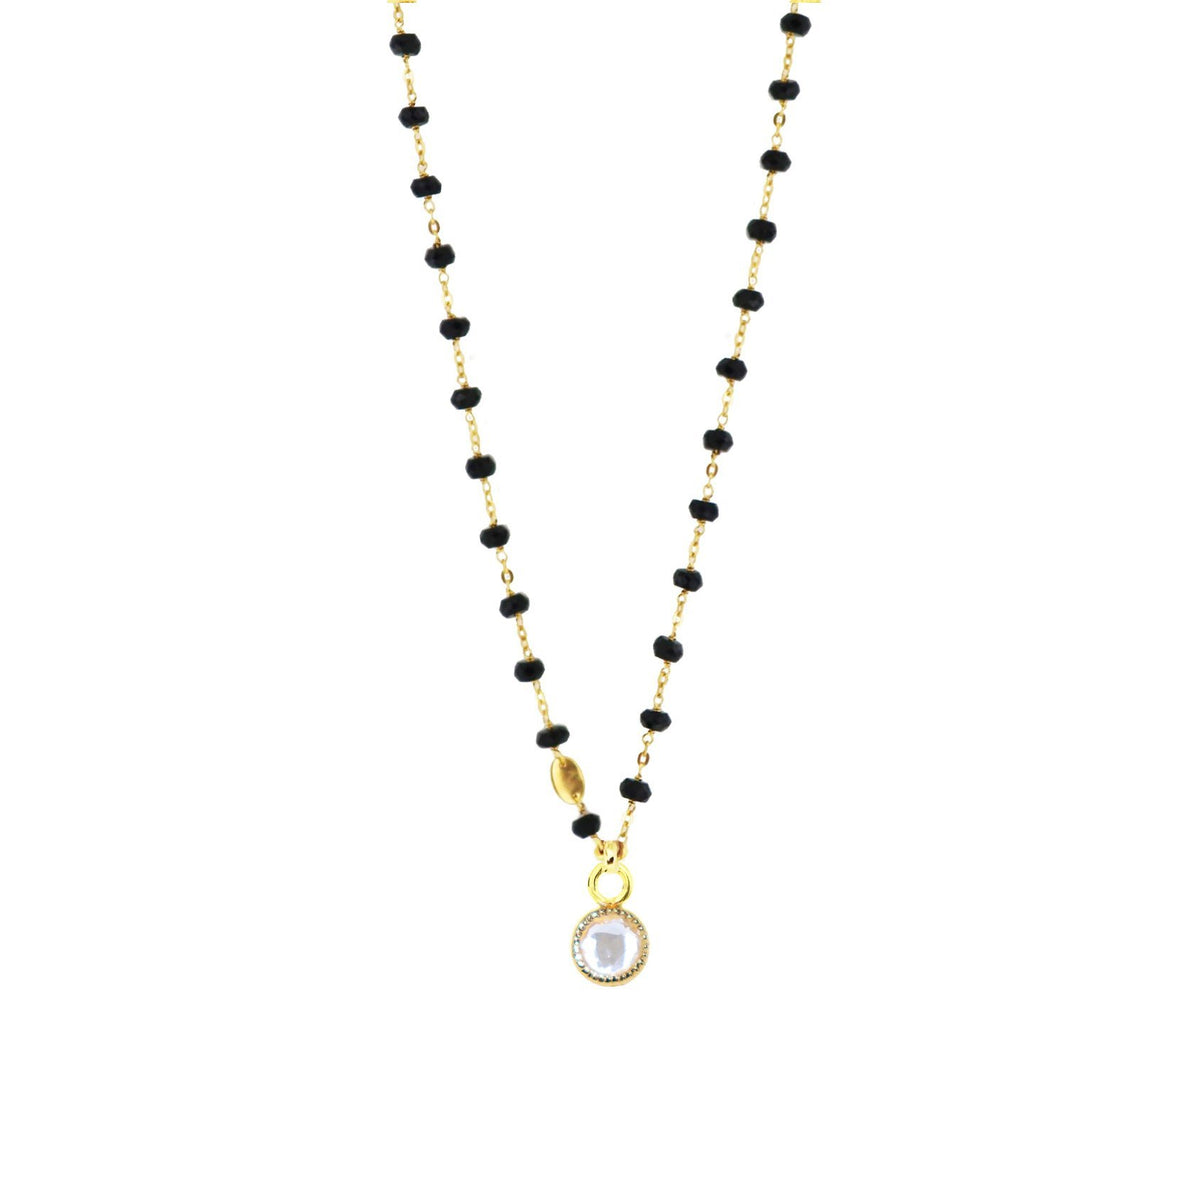 LEGACY ICON - WHITE TOPAZ & GOLD - SO PRETTY CARA COTTER